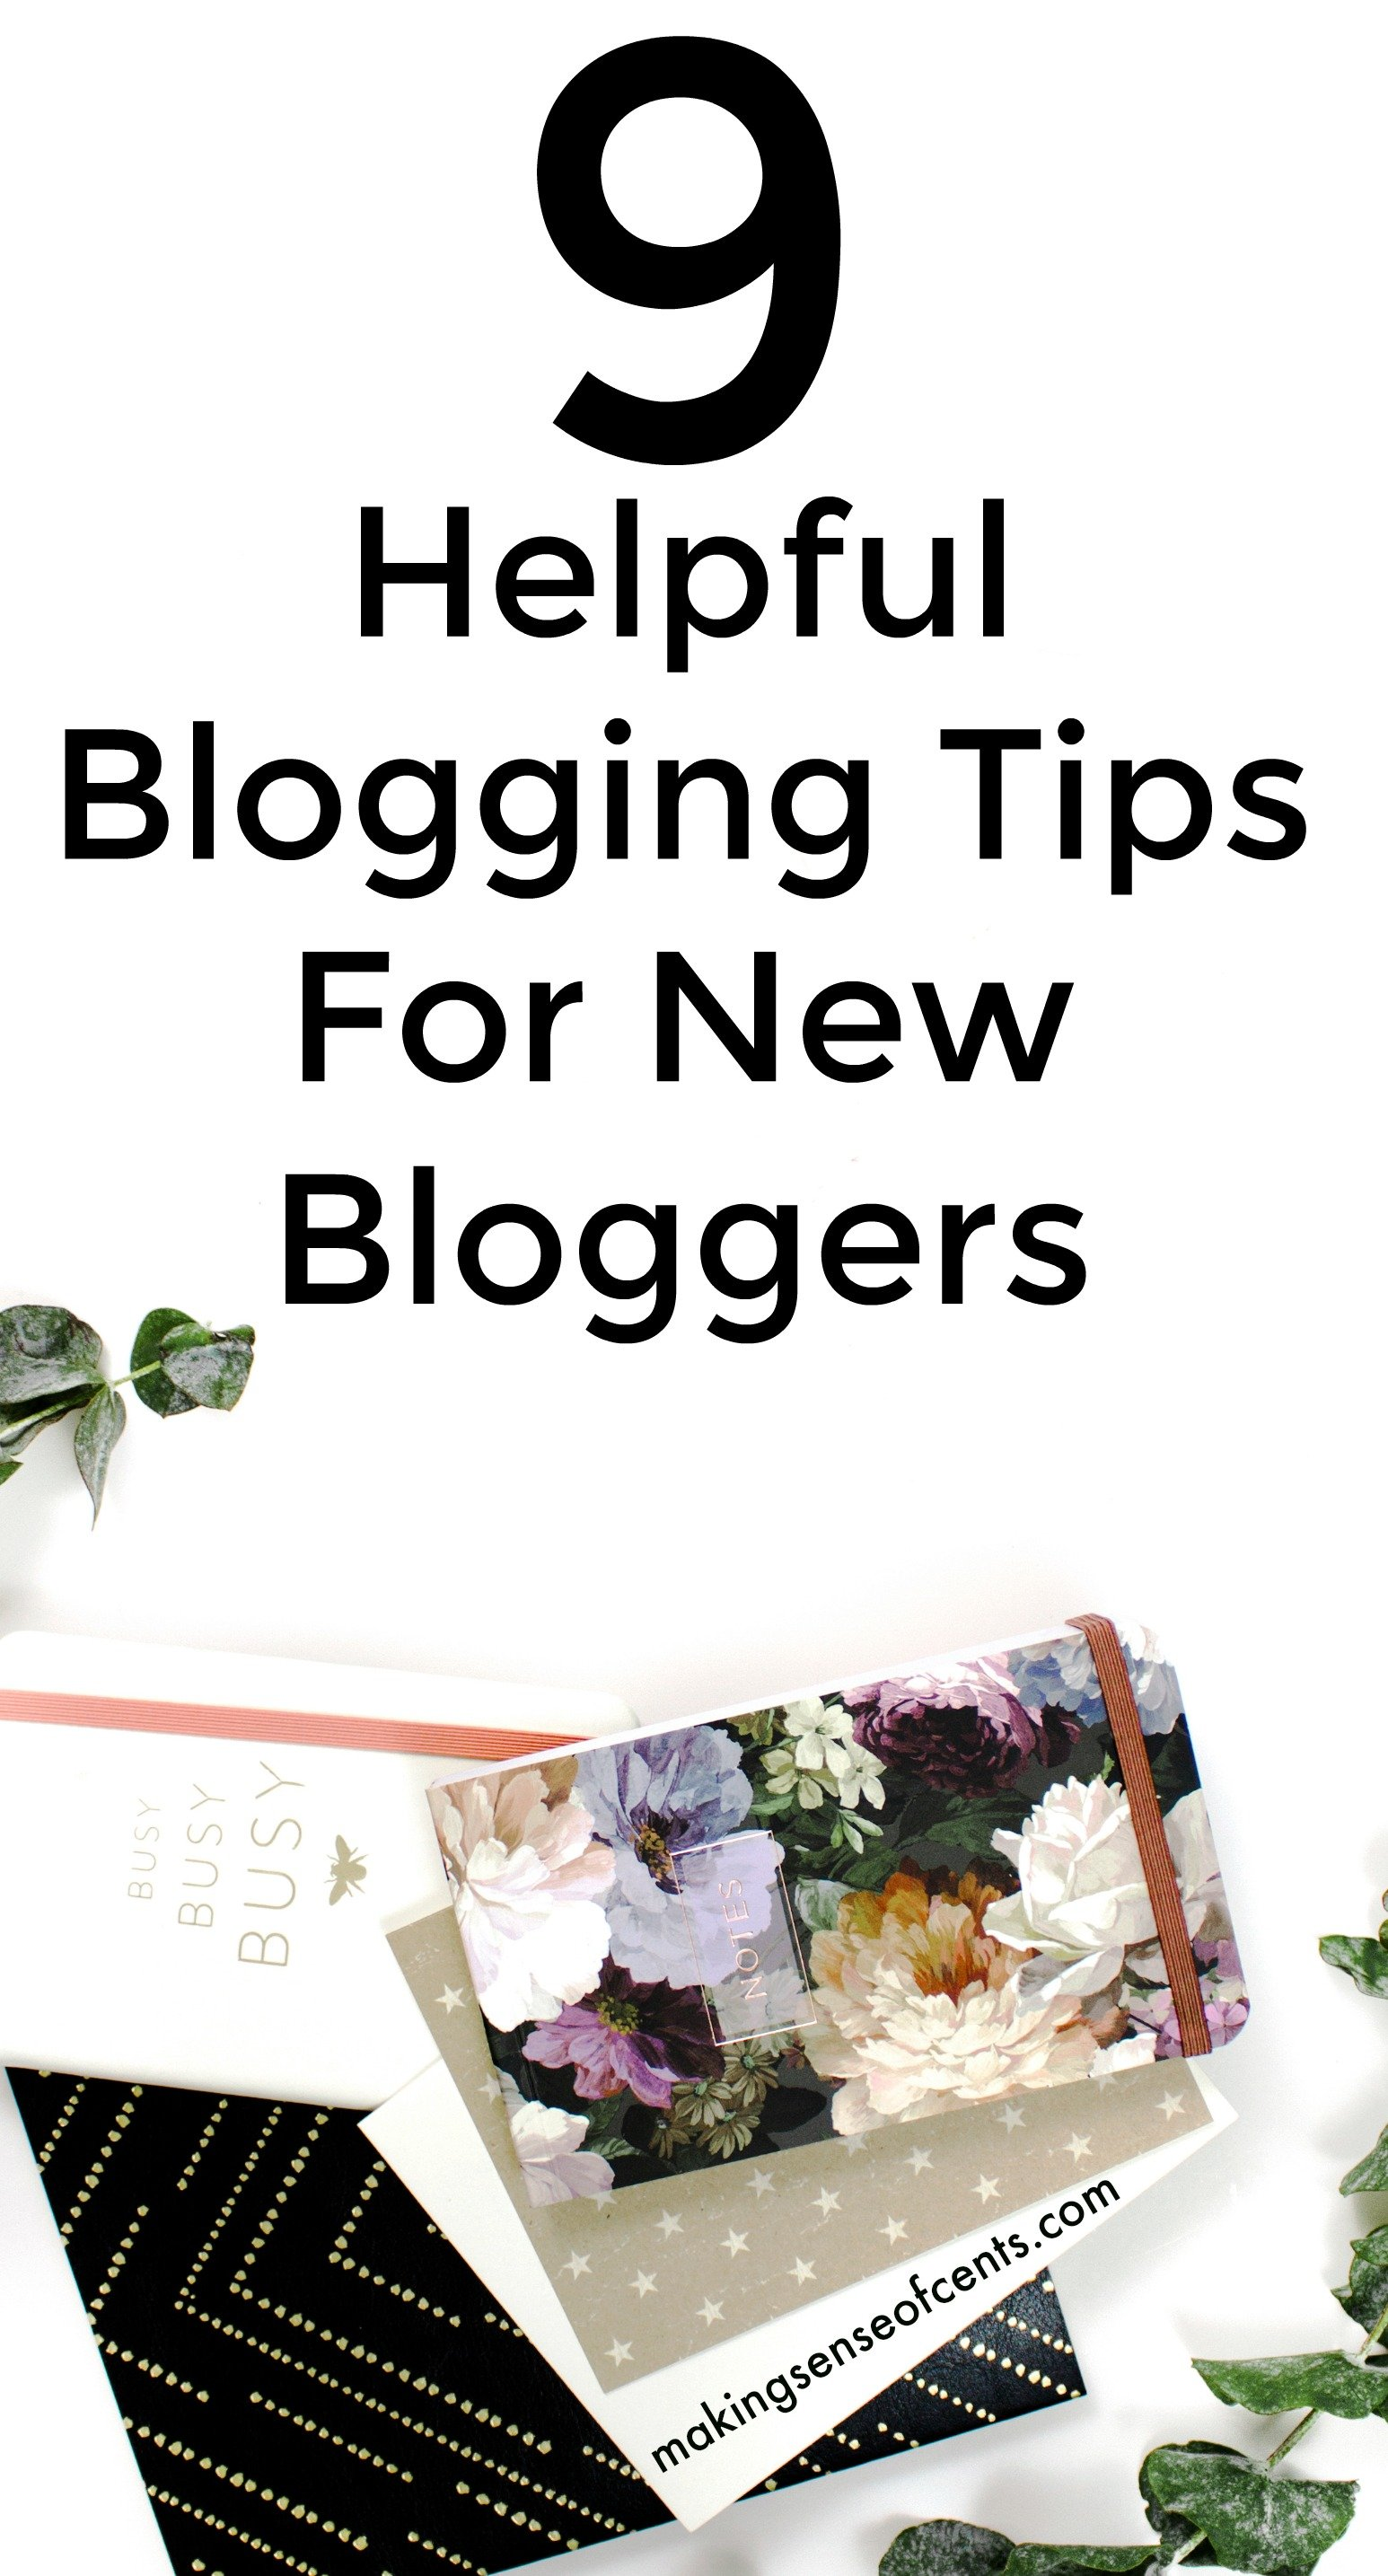 Check out these 9 helpful blogging tips for new bloggers. This is a great list!